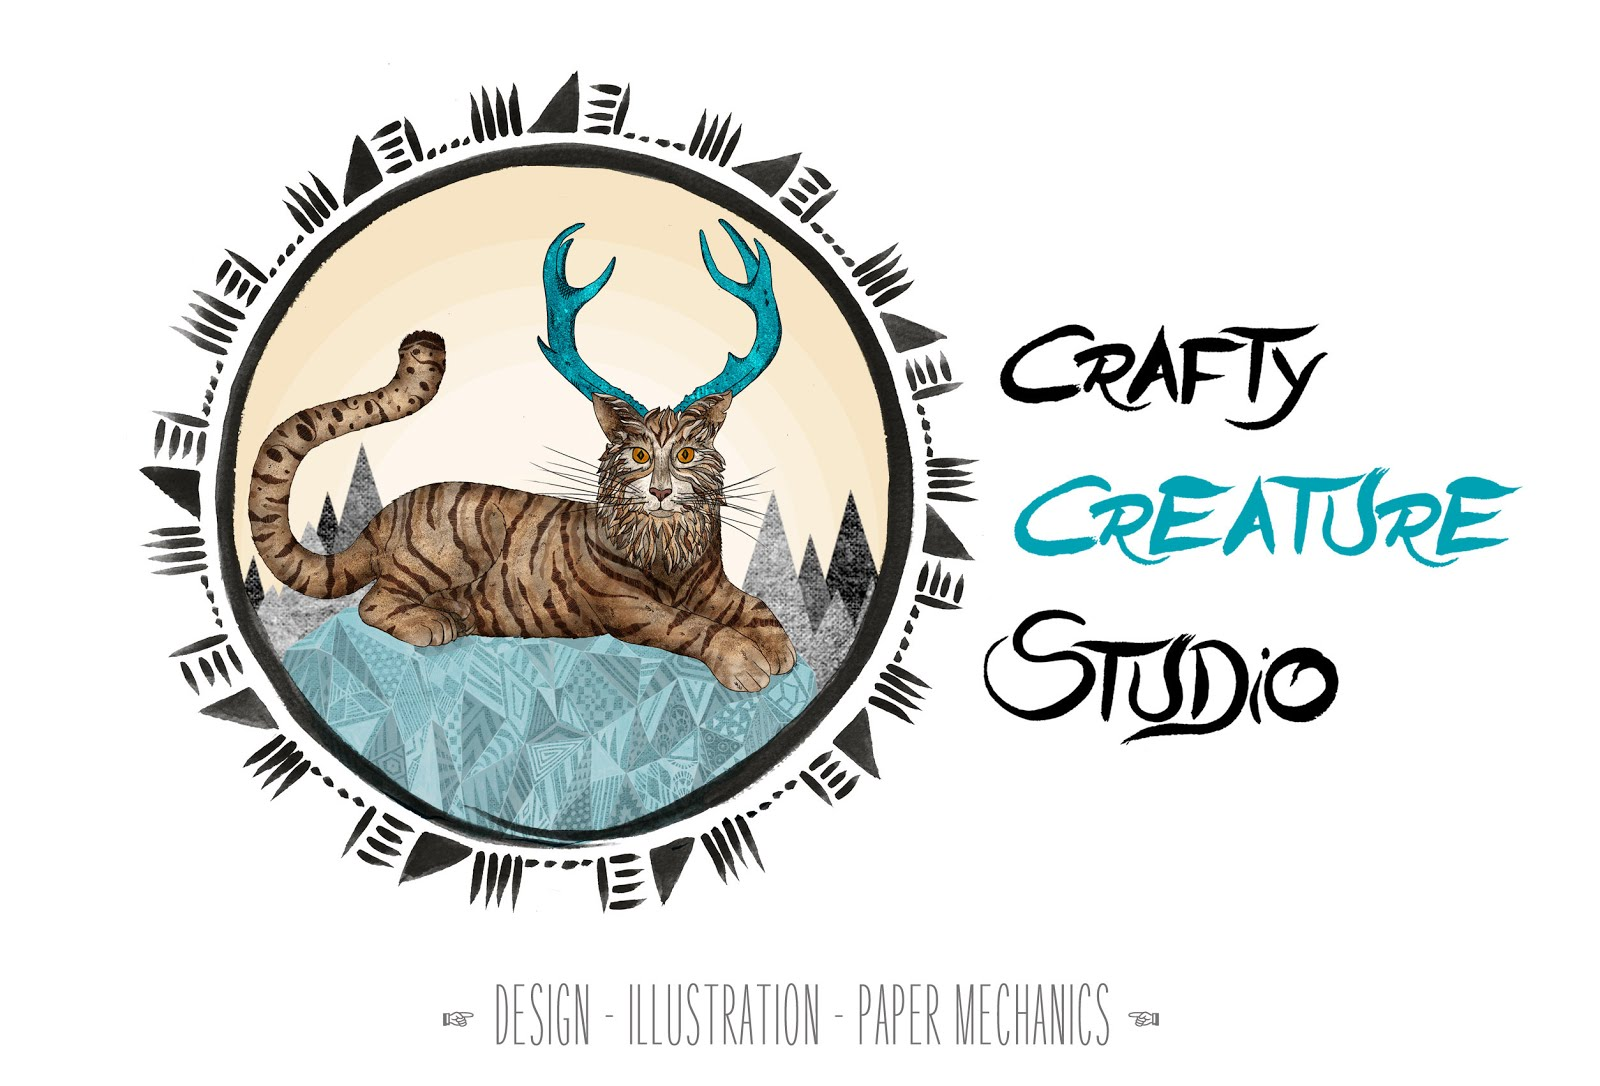 Crafty Creature Studio